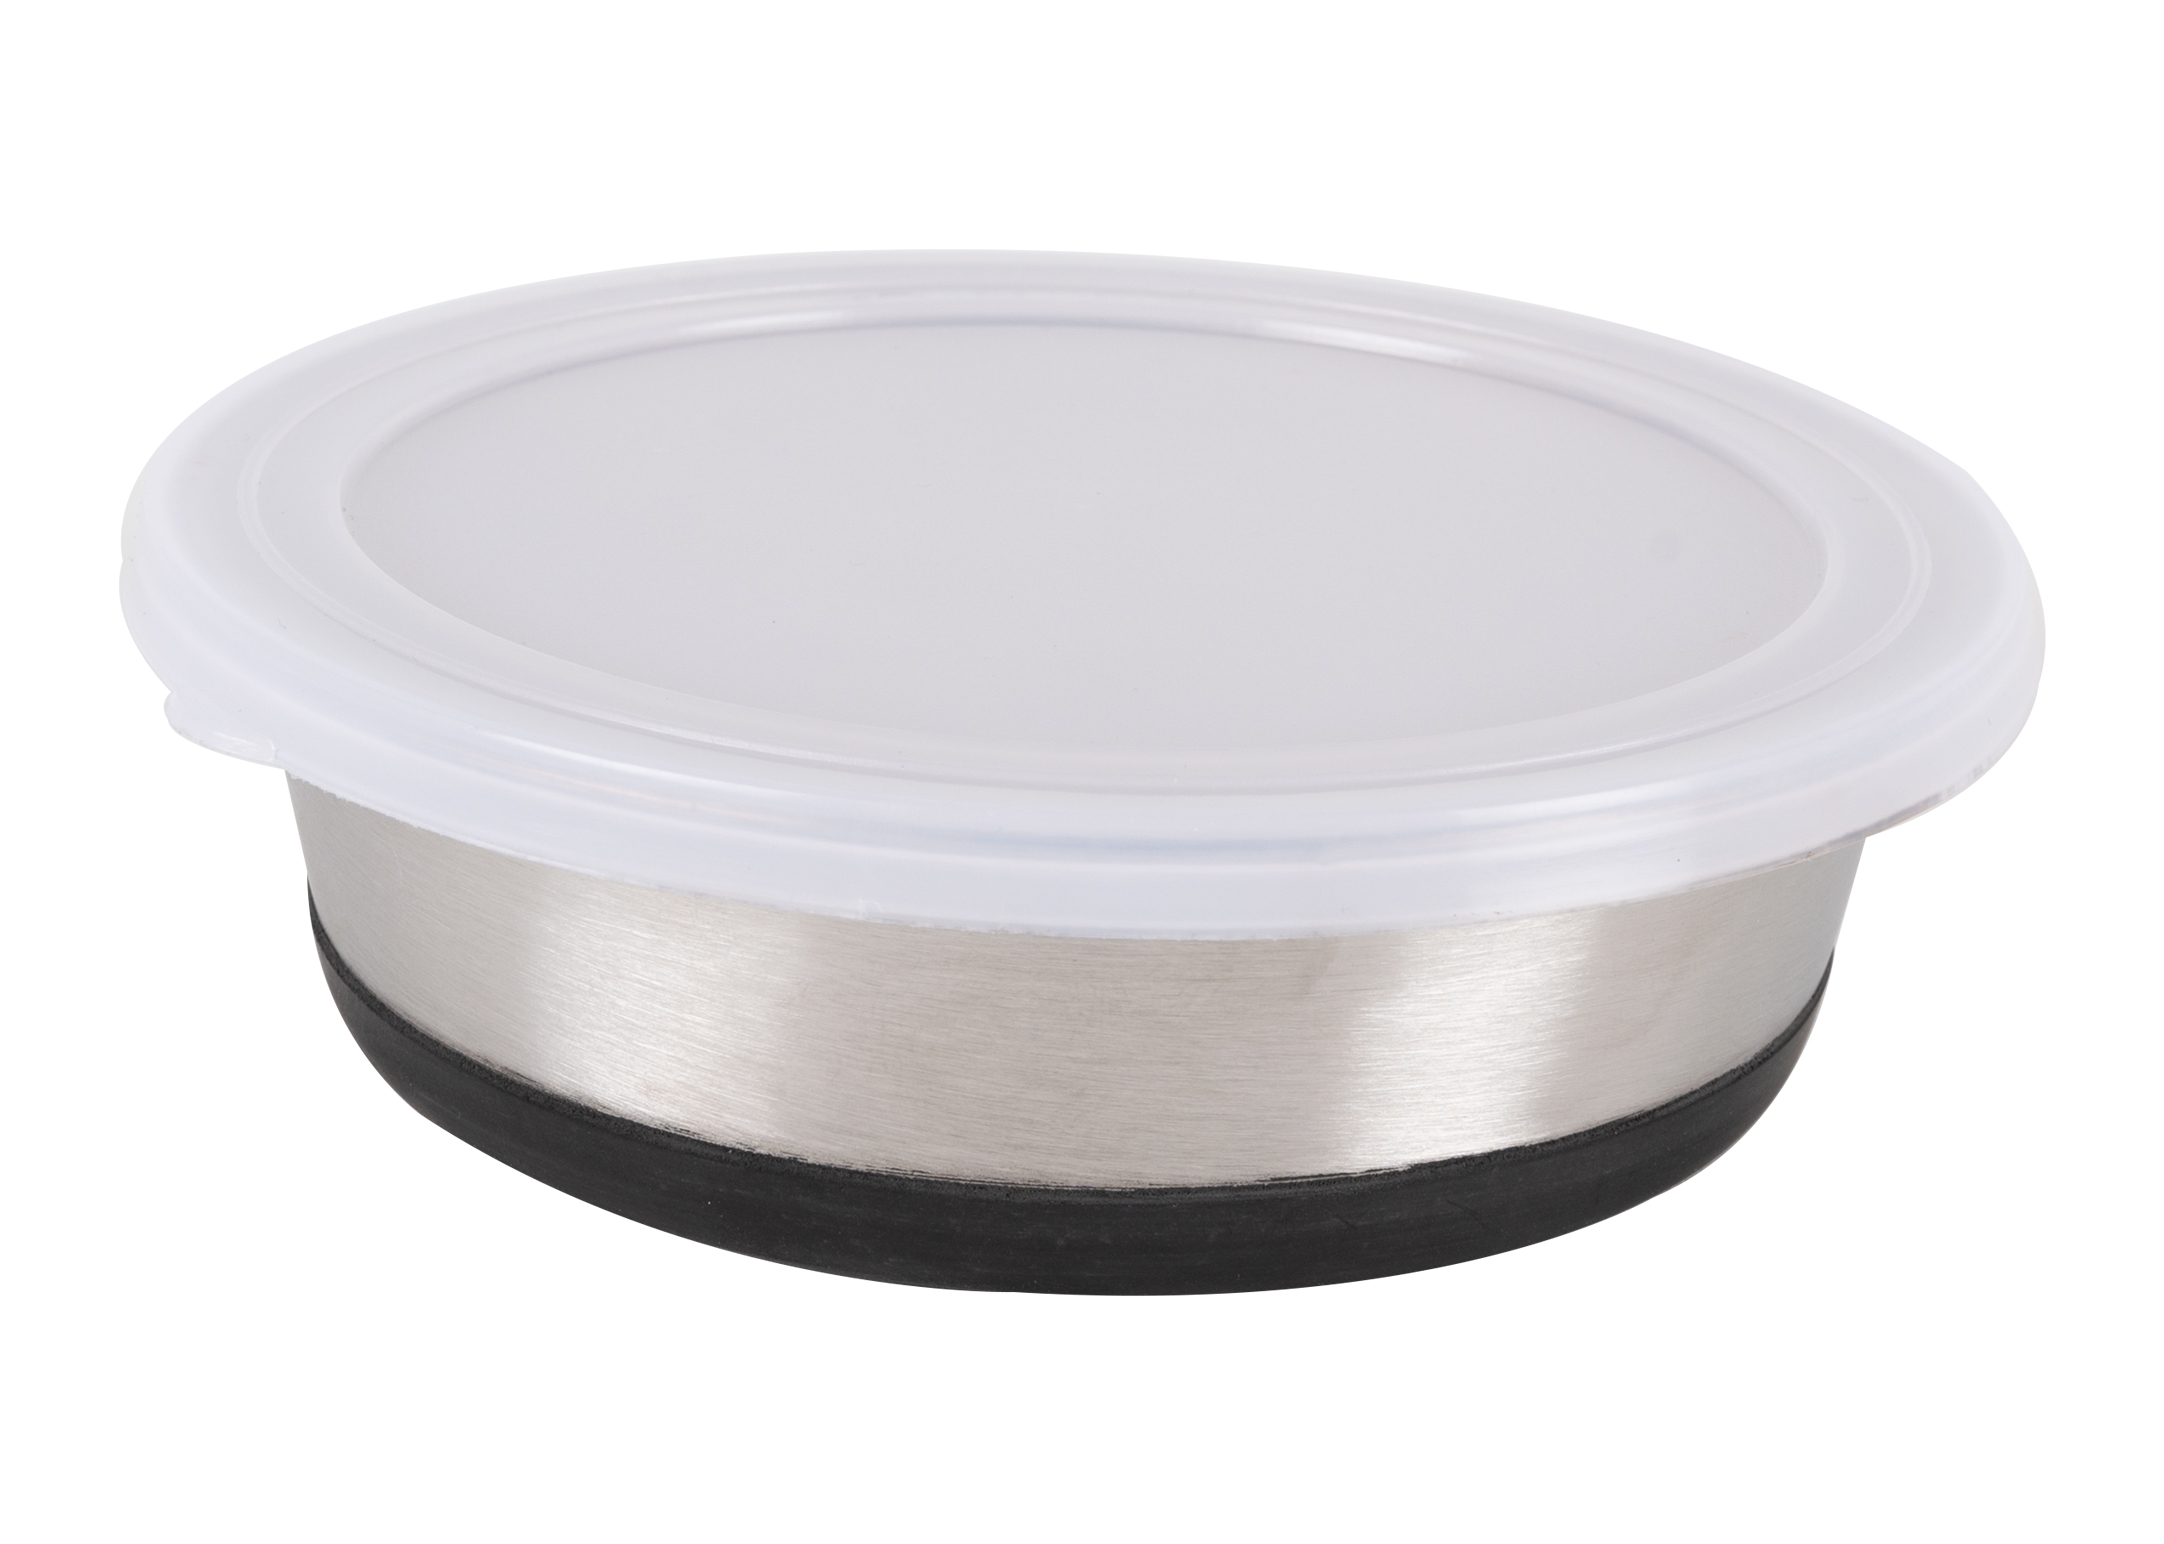 Show Tech Stainless Steel anti slip Bowl with Lid 473 ml